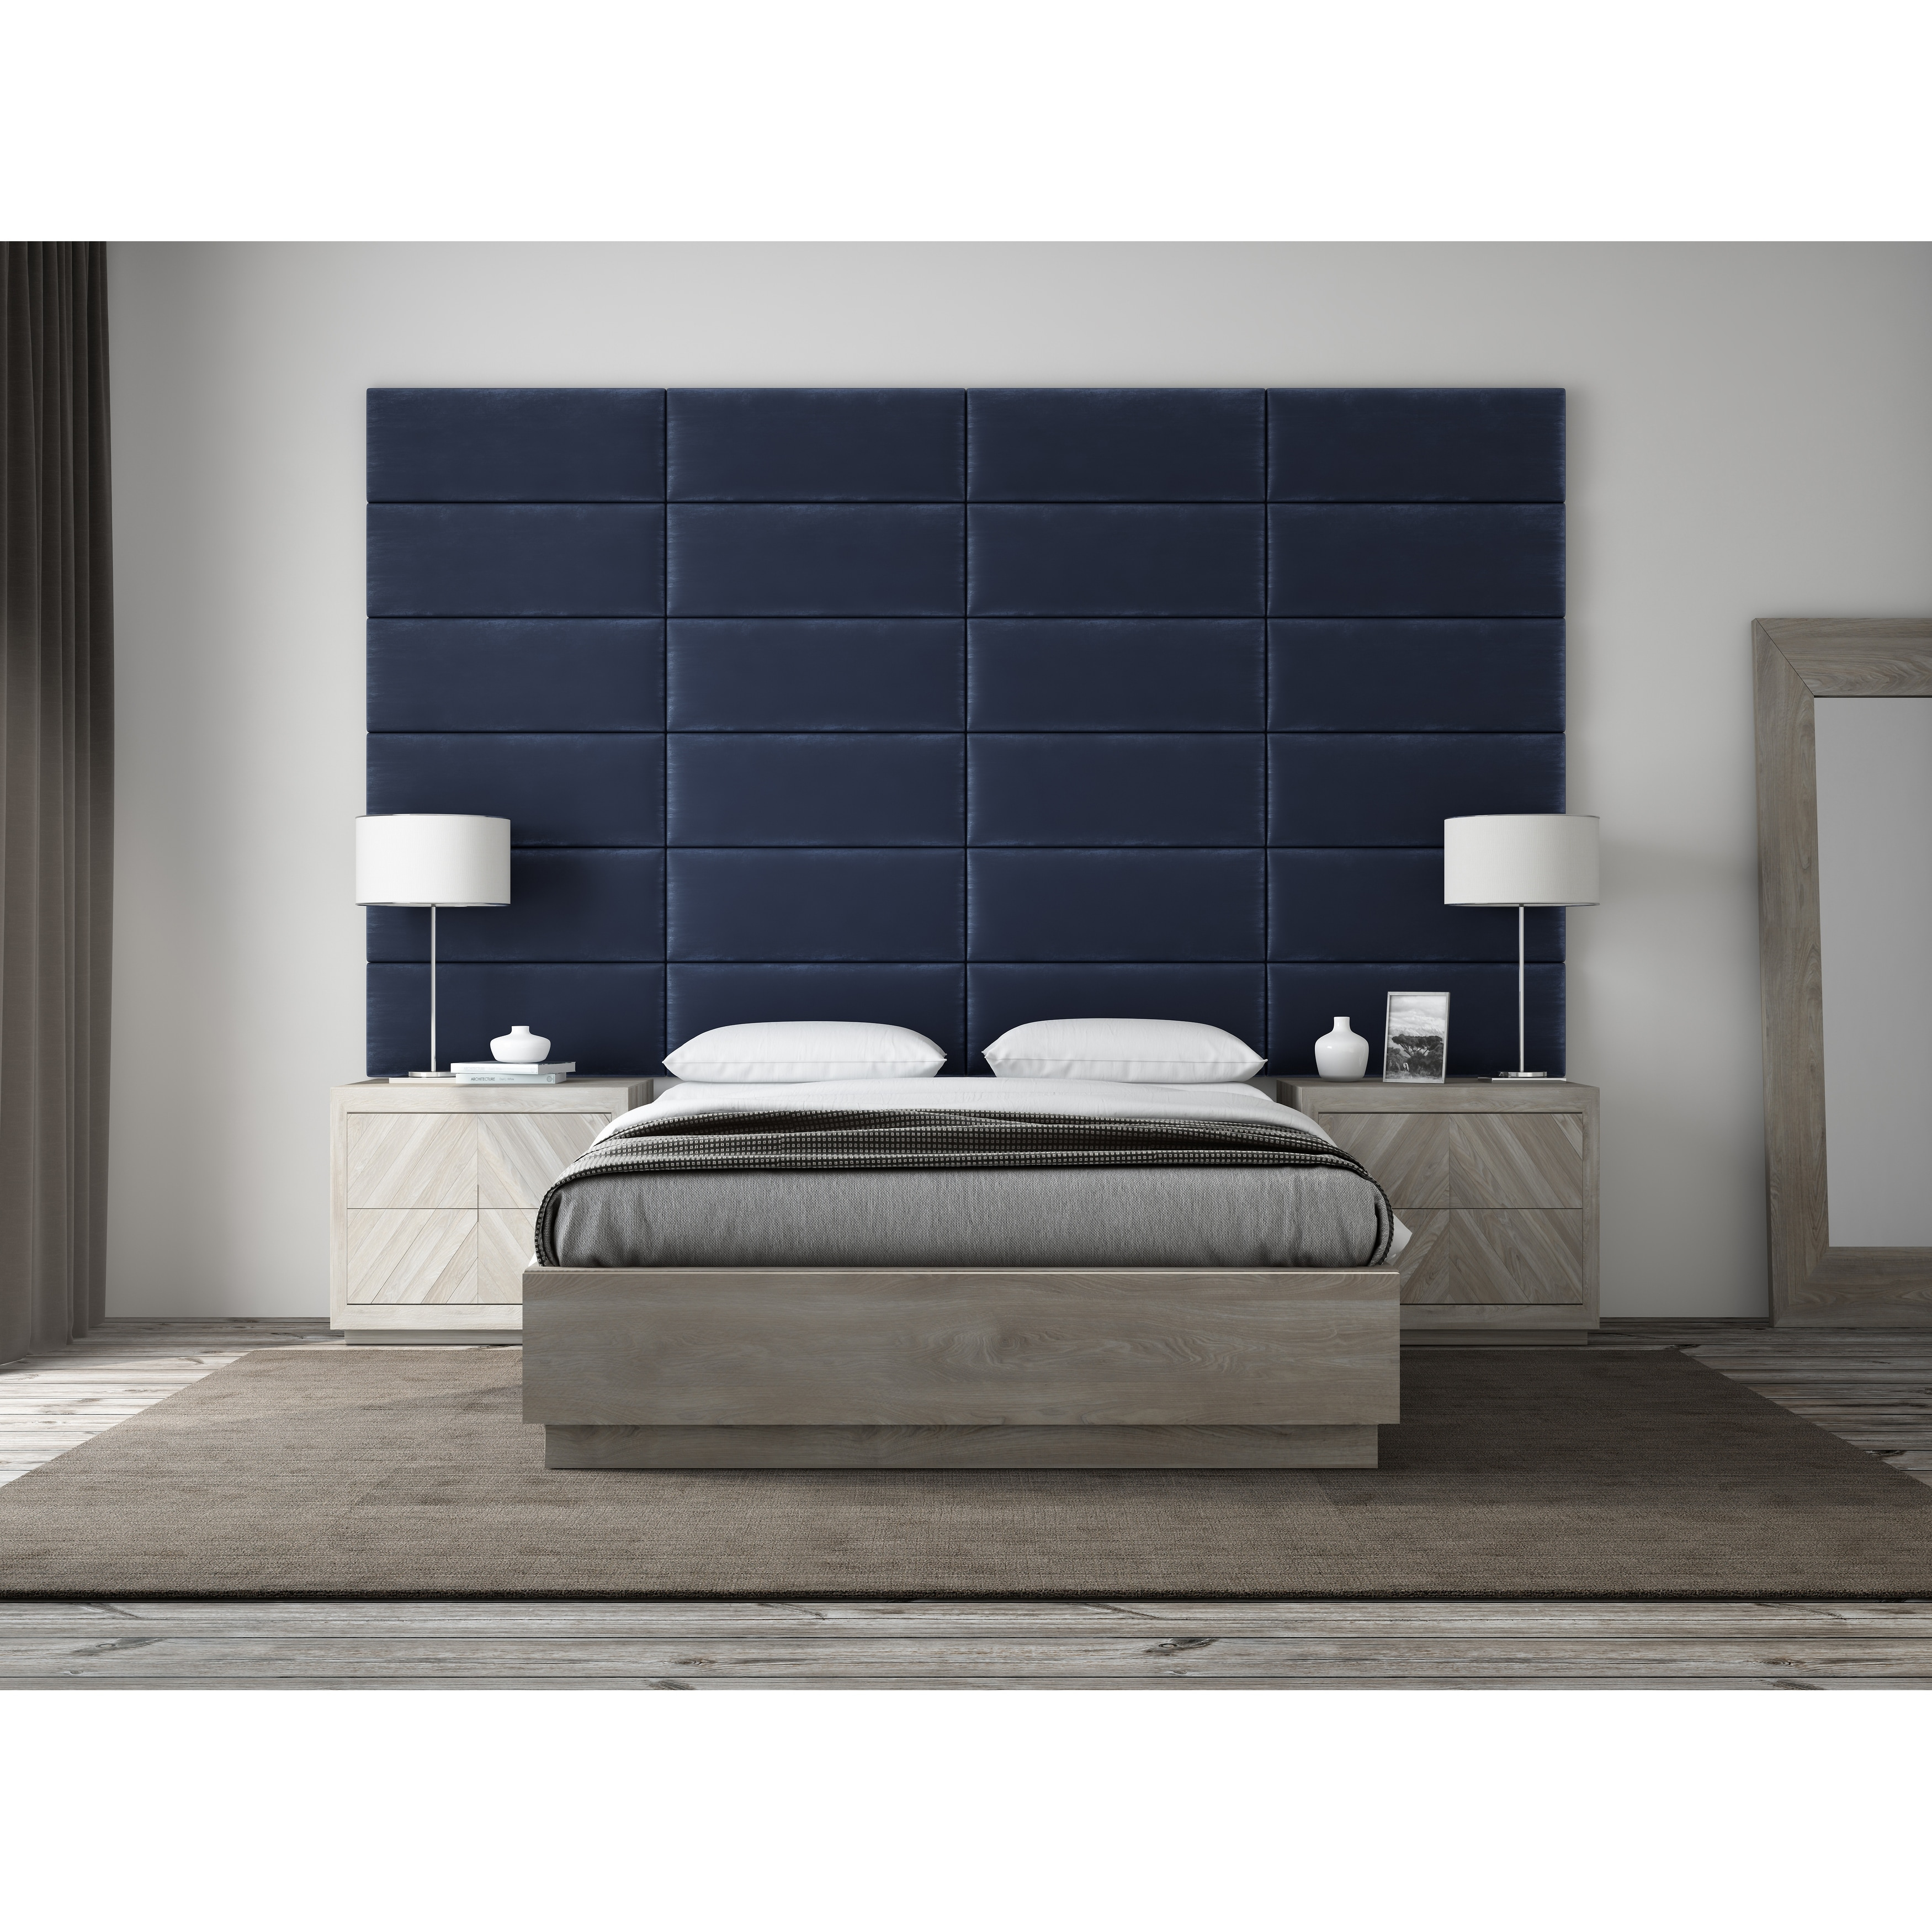 Shop VANT Upholstered Headboards - Accent Wall Panels - Packs Of 4 ...